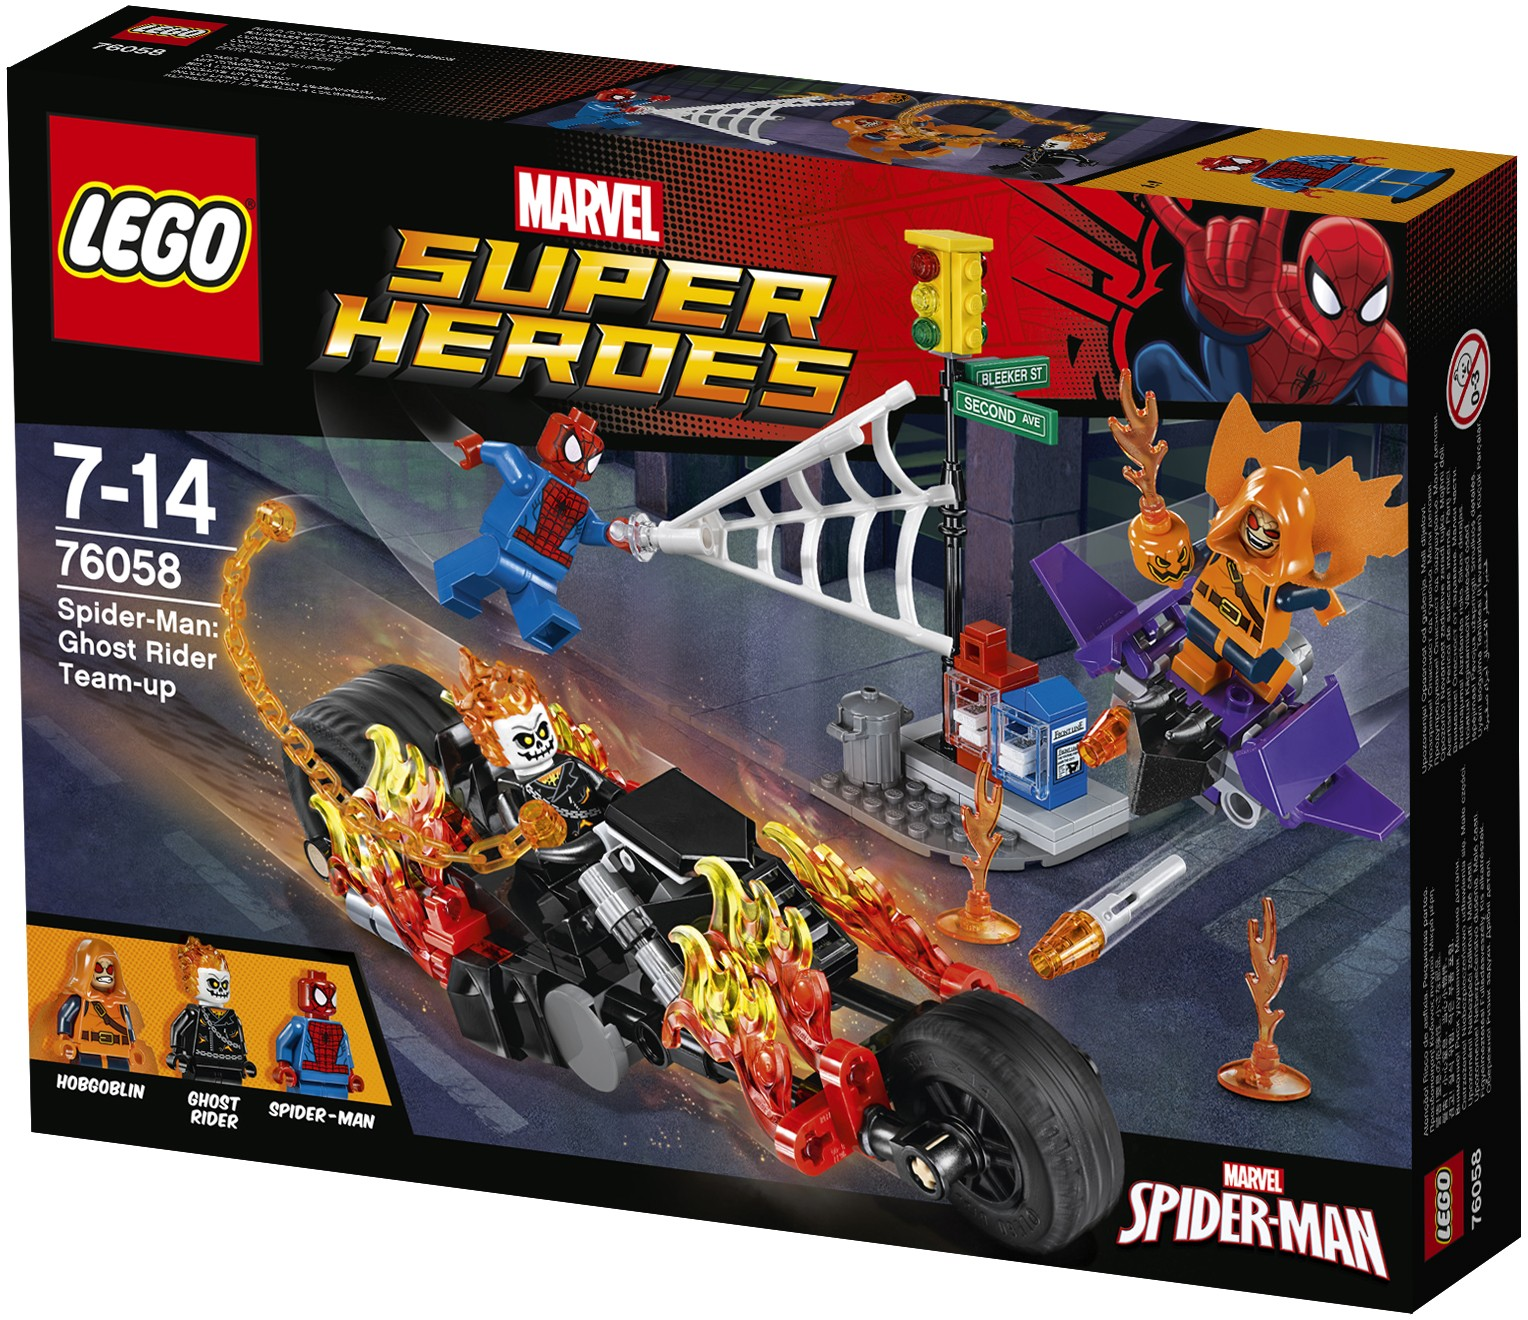 Review Lego 76058 Spider Man Ghost Rider Team Up Jays Brick Blog